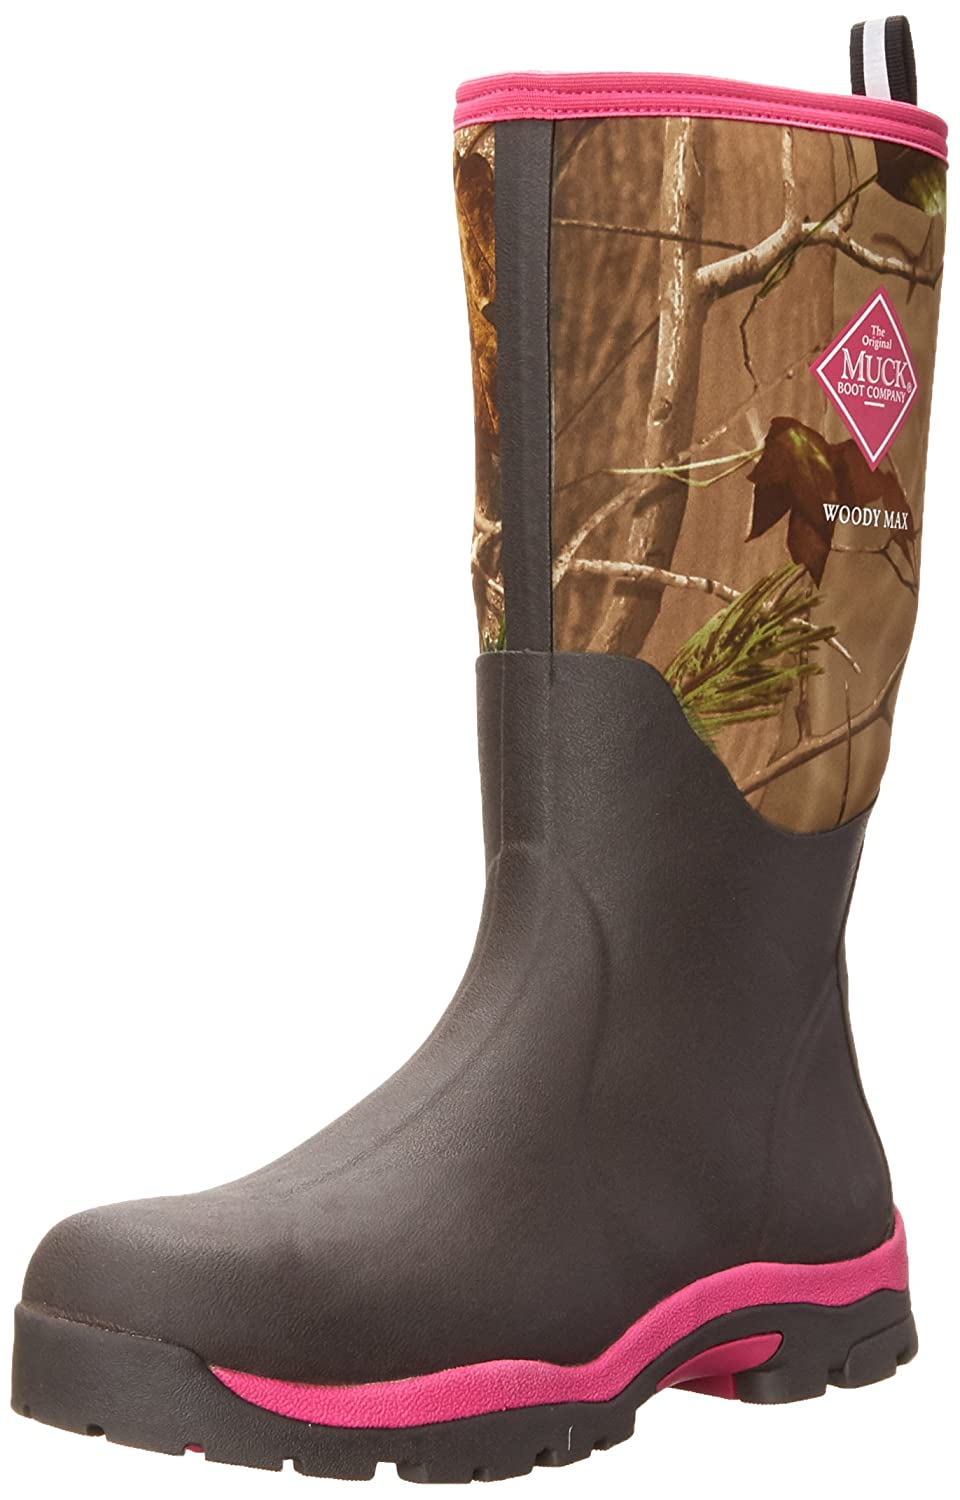 MuckBoots Women's Woody PK Cold Conditions Hunting Boot